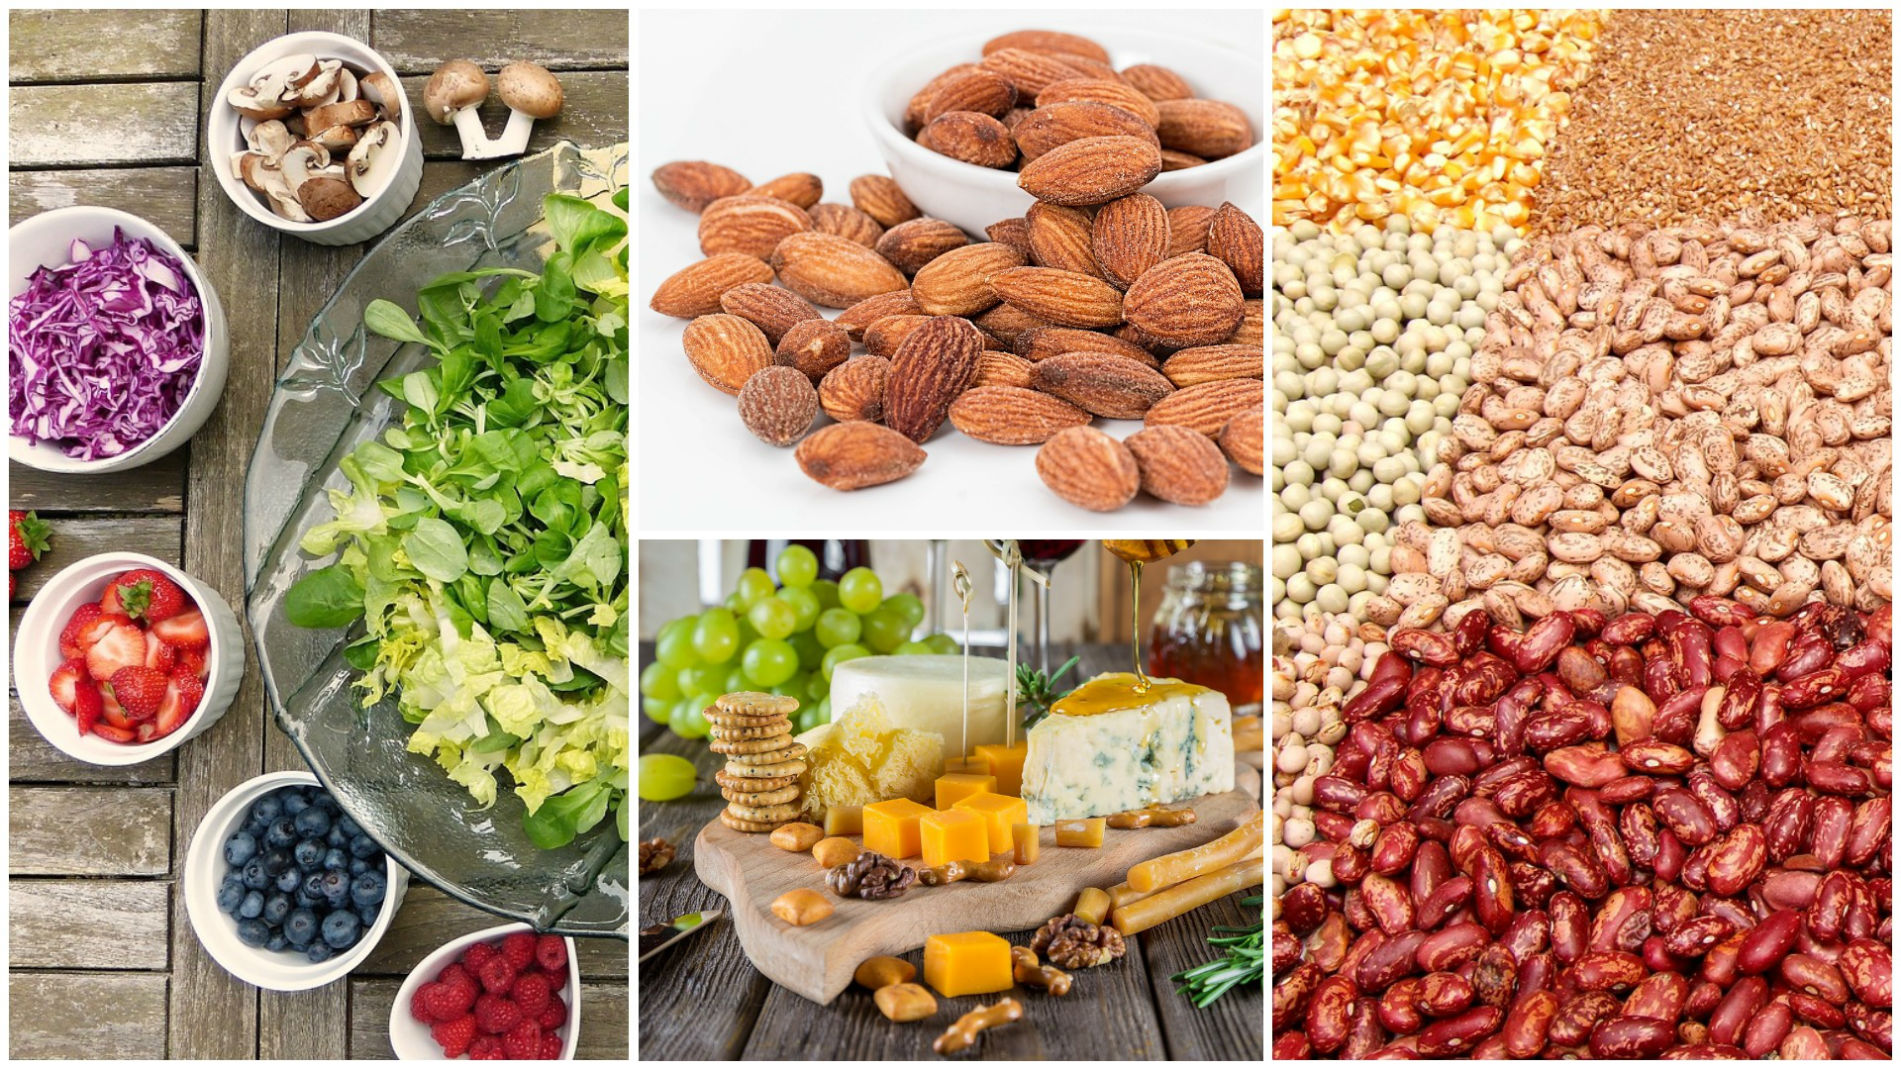 Low glycemic index foods for indians